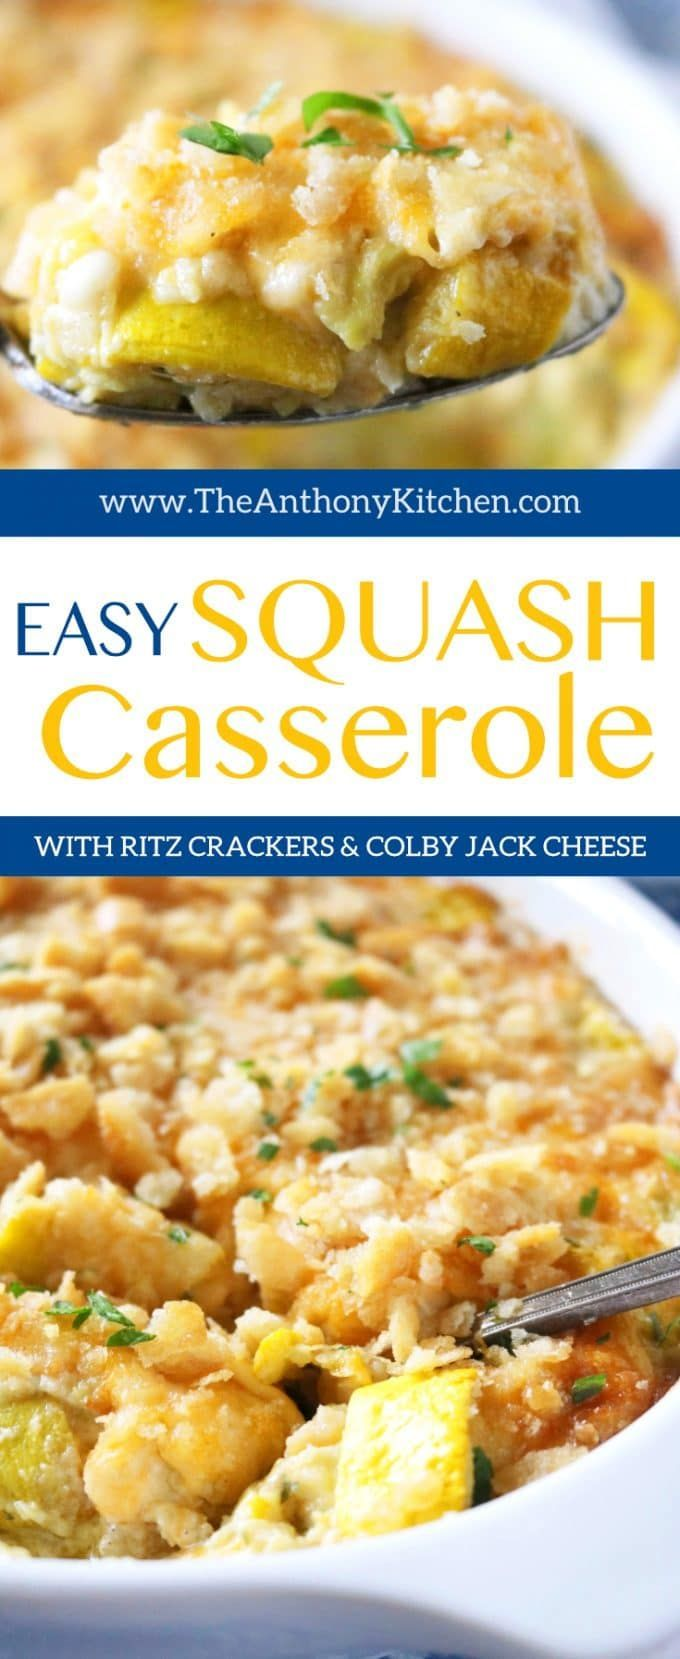 Easy Squash Casserole with Ritz Crackers | A recipe for the very best Southern squash casserole, featuring yellow squash, cheese, and Ritz crackers. Perfect for barbecues, family dinners, potlucks, and more! | #potluckrecipes #vegetablesidedish #squashrecipes #casserole